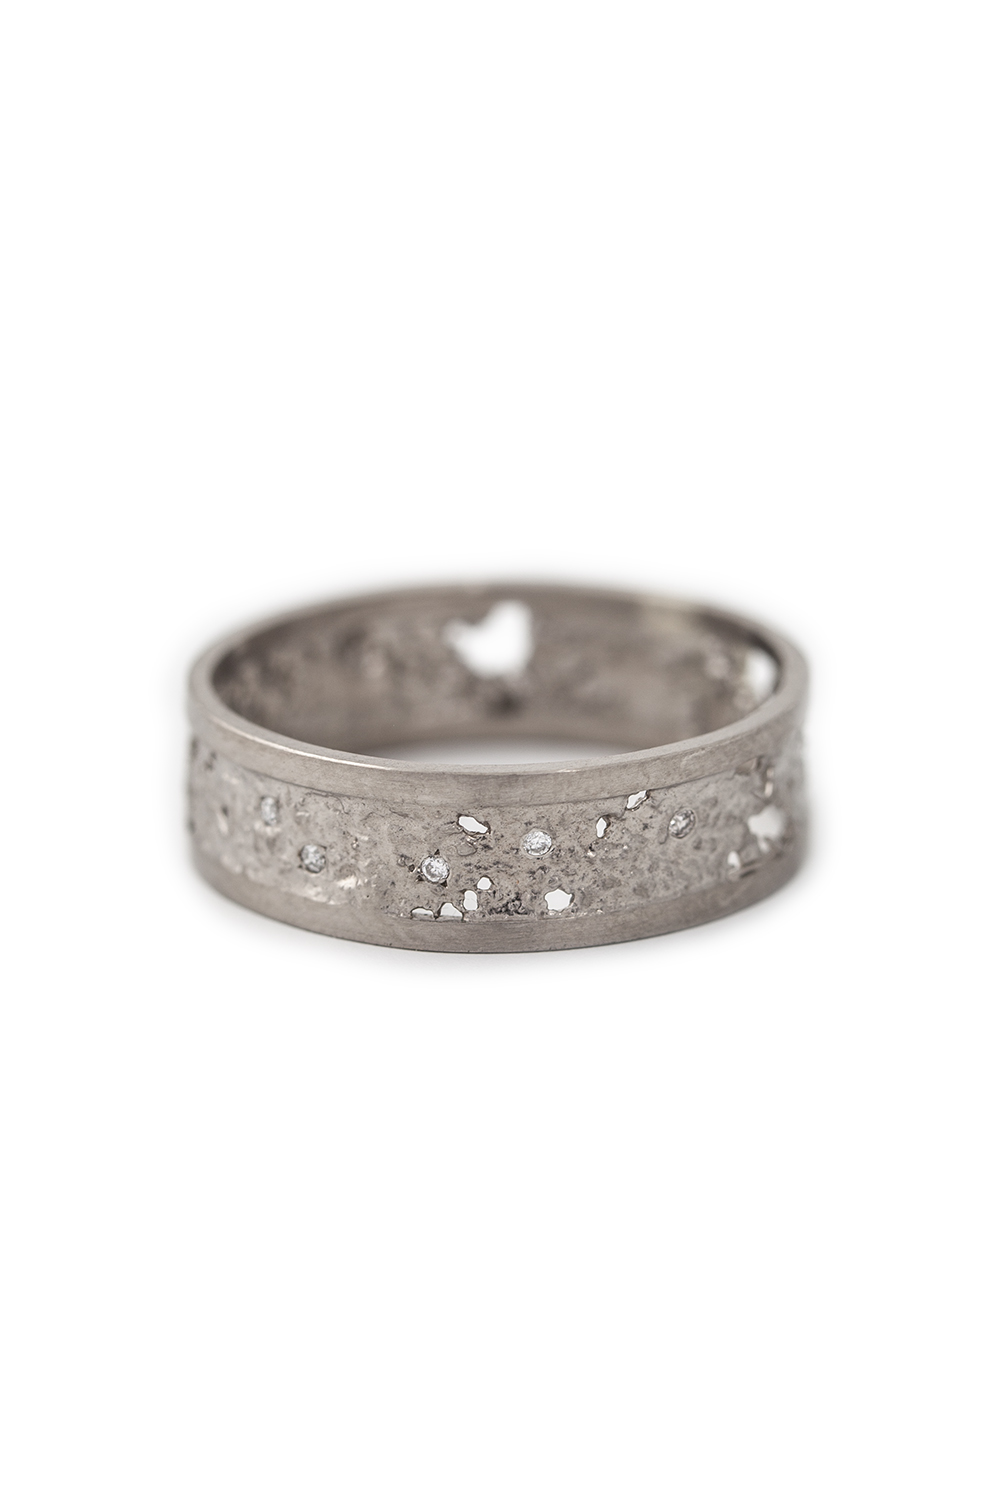 Raw Ring in white gold with 12 white diamonds, £1860